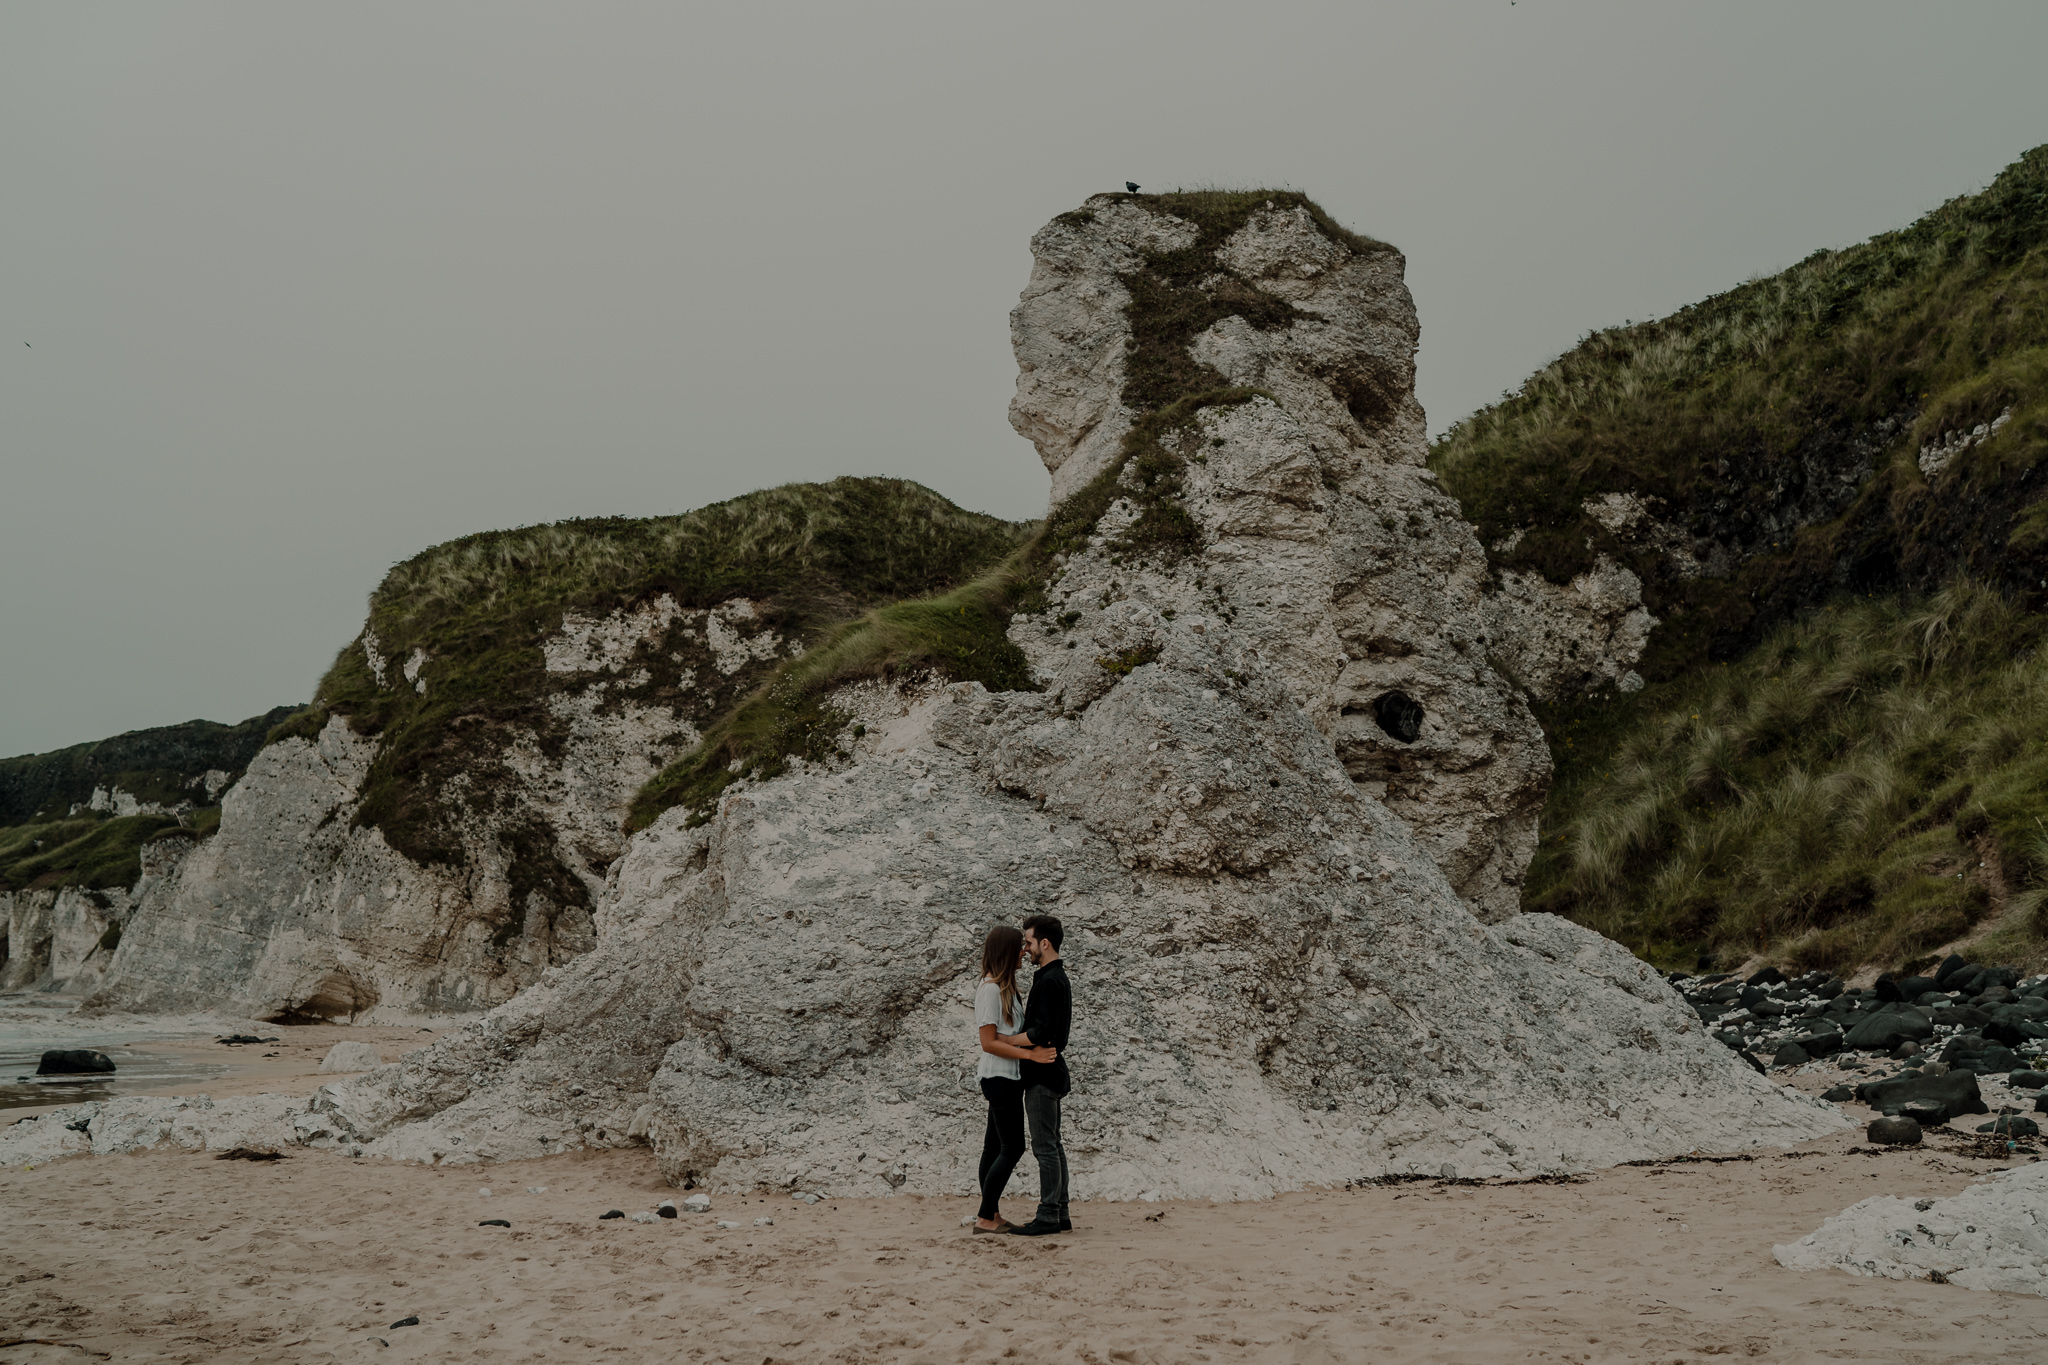 whiterocks-beach-adventure-elopement-fun-wedding-photographers-northern-ireland-the-martins-3.jpg